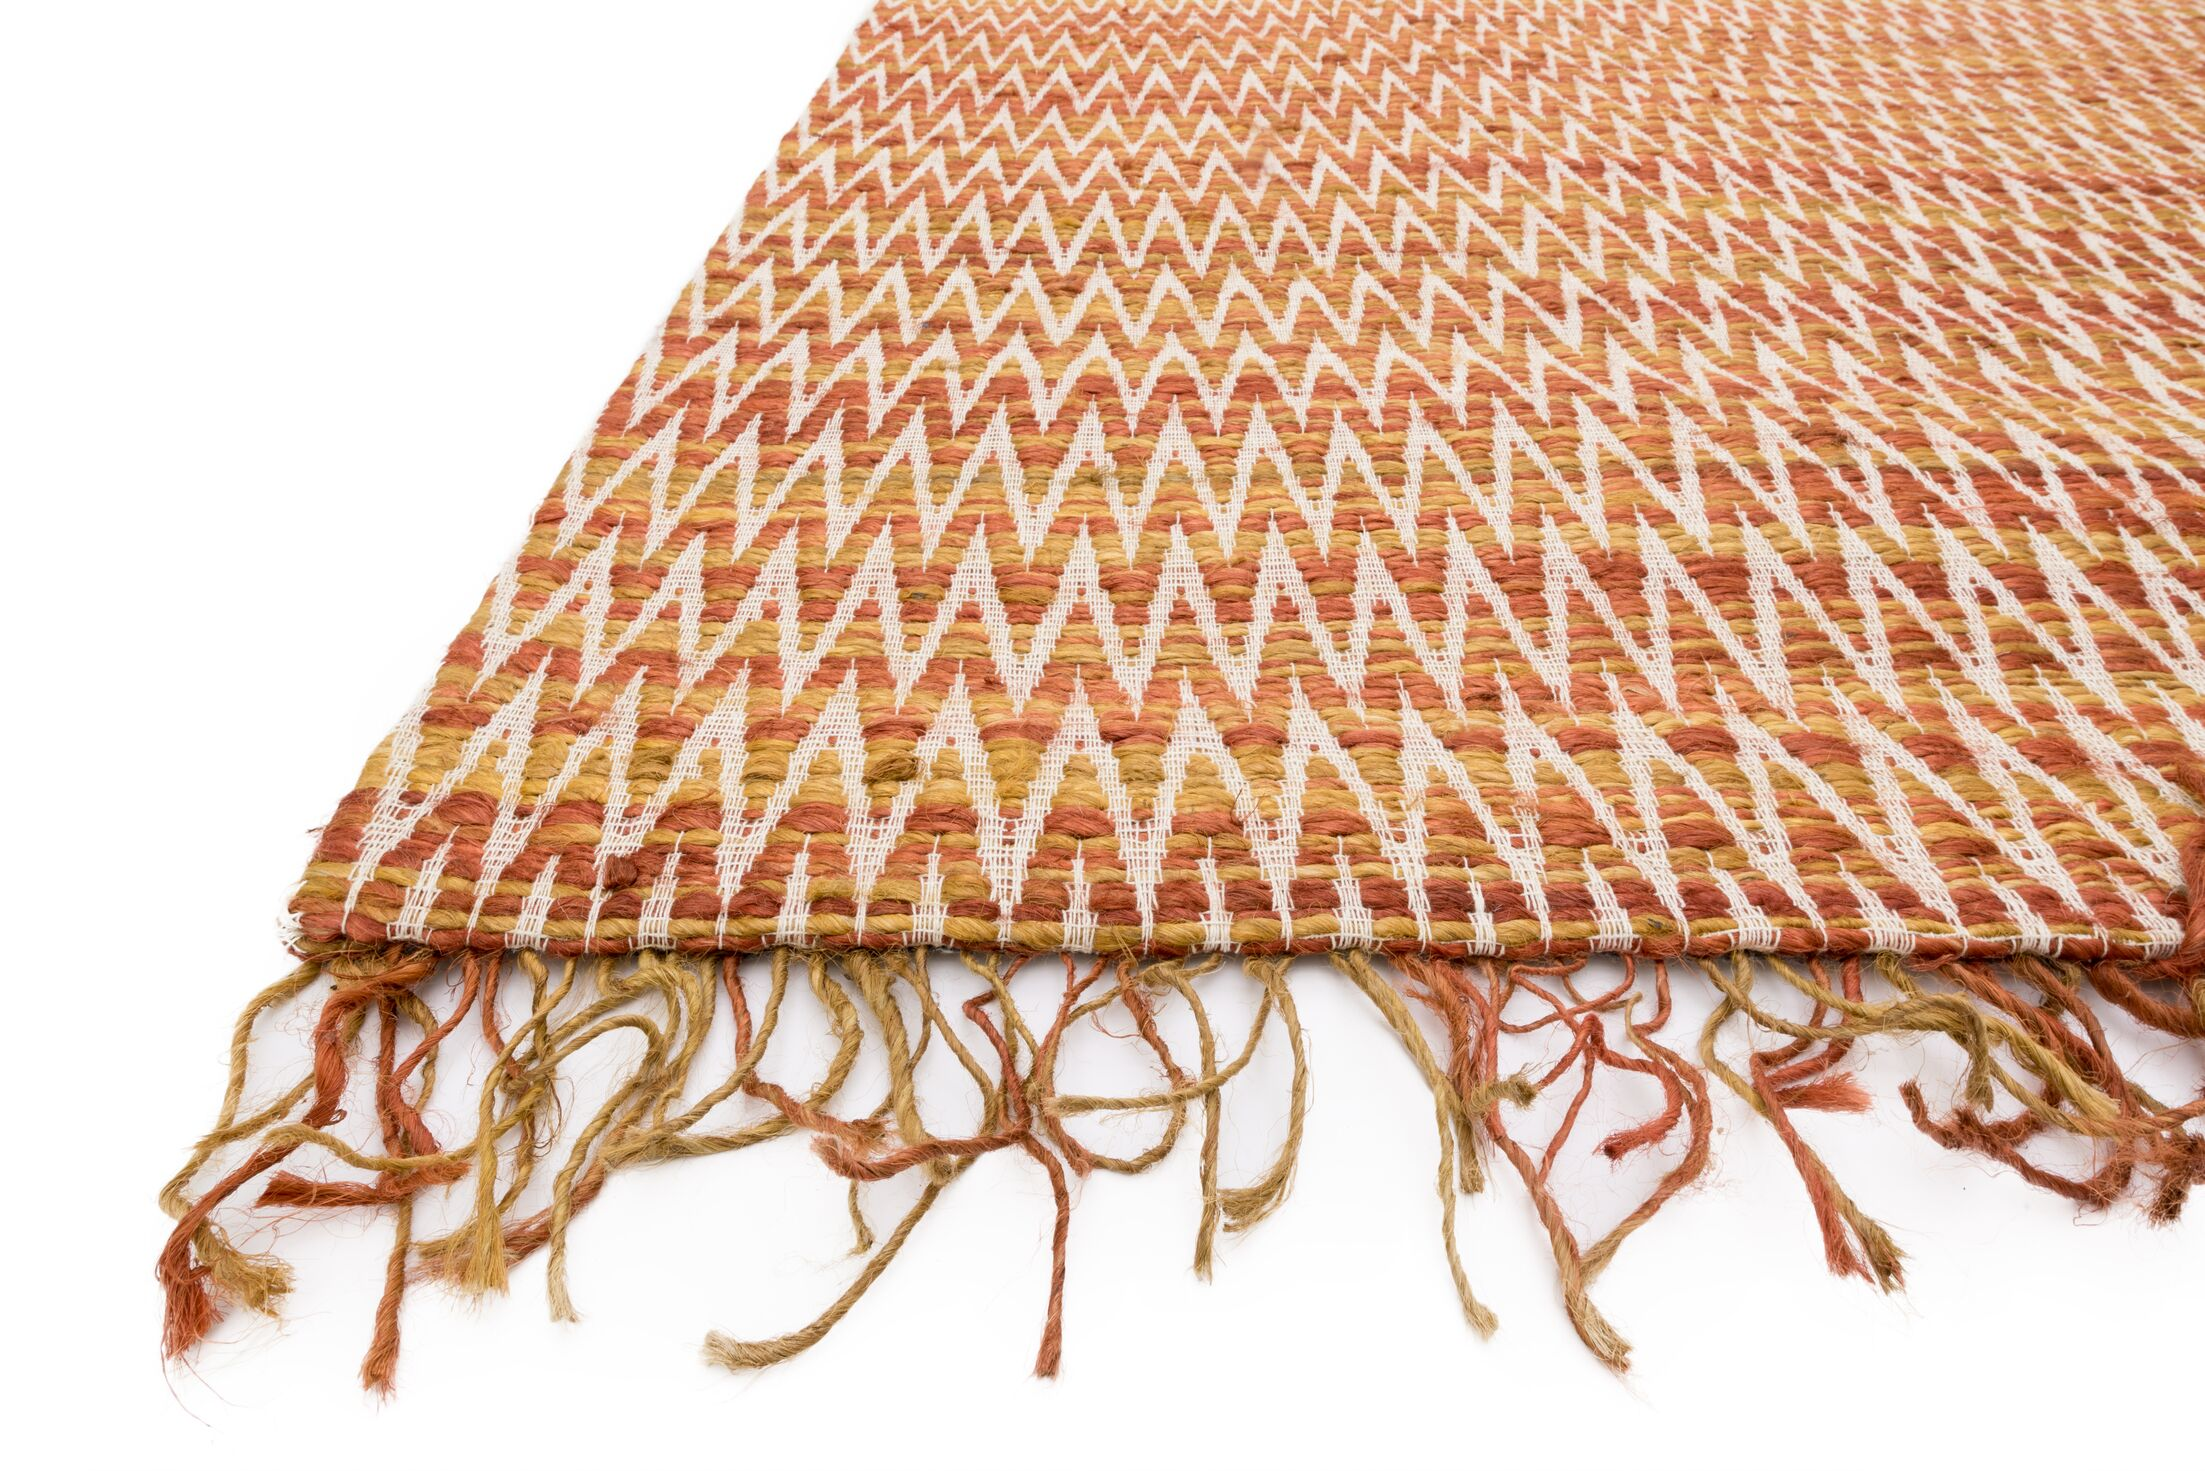 Faraci Hand-Woven Orange Area Rug Rug Size: Rectangle 7'9